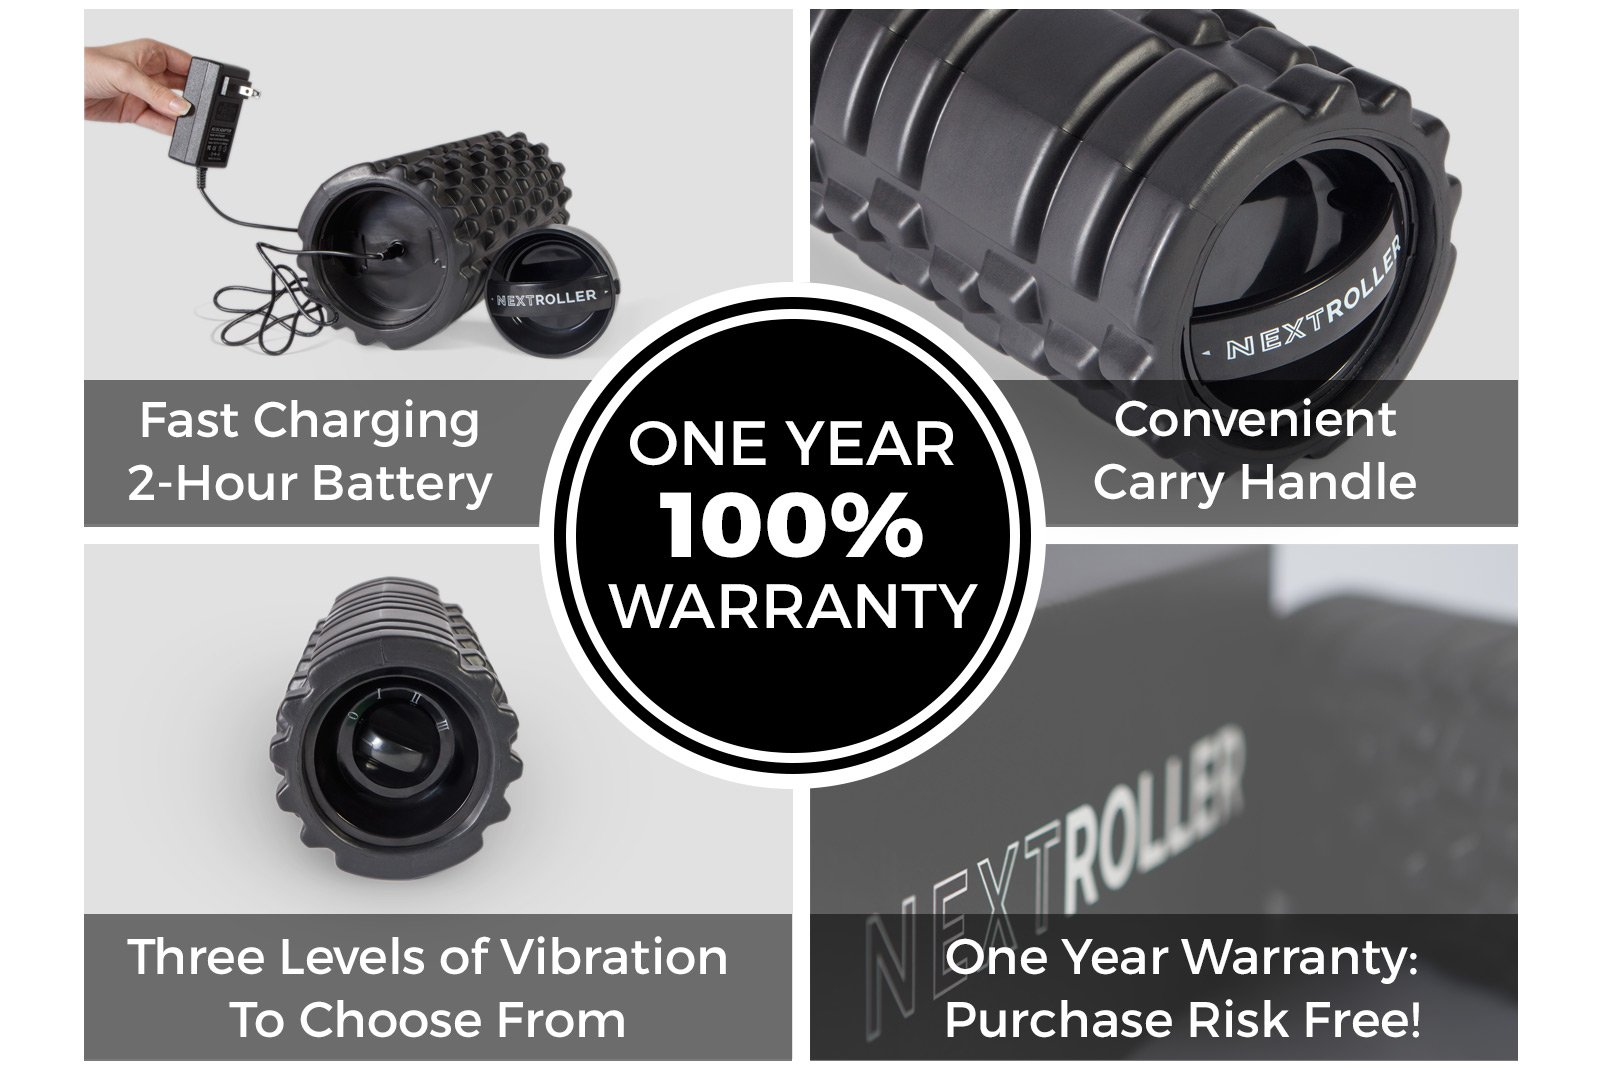 NextRoller 3-Speed Rechargeable Electric Vibrating Foam Roller - The Future of Muscle Recovery, Mobility, and Deep Tissue Trigger Point Sports Massage Therapy - Firm High Density, 1 Year Warranty by NextRoller (Image #3)